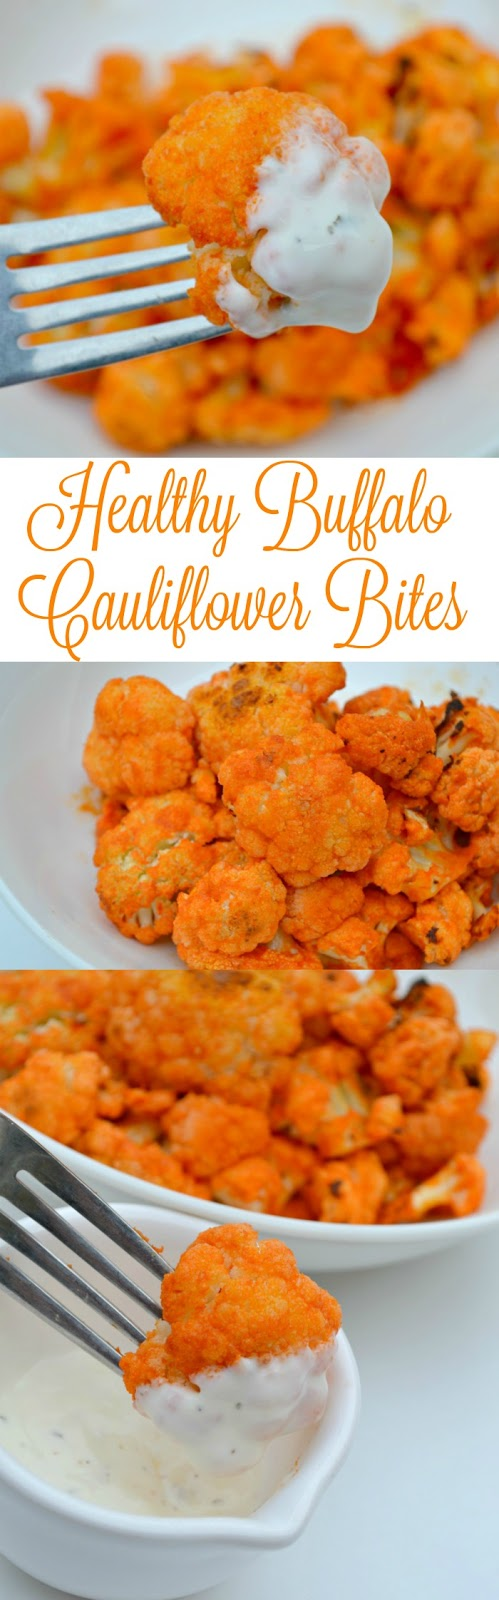 The Best Healthy Buffalo Cauliflower Bites